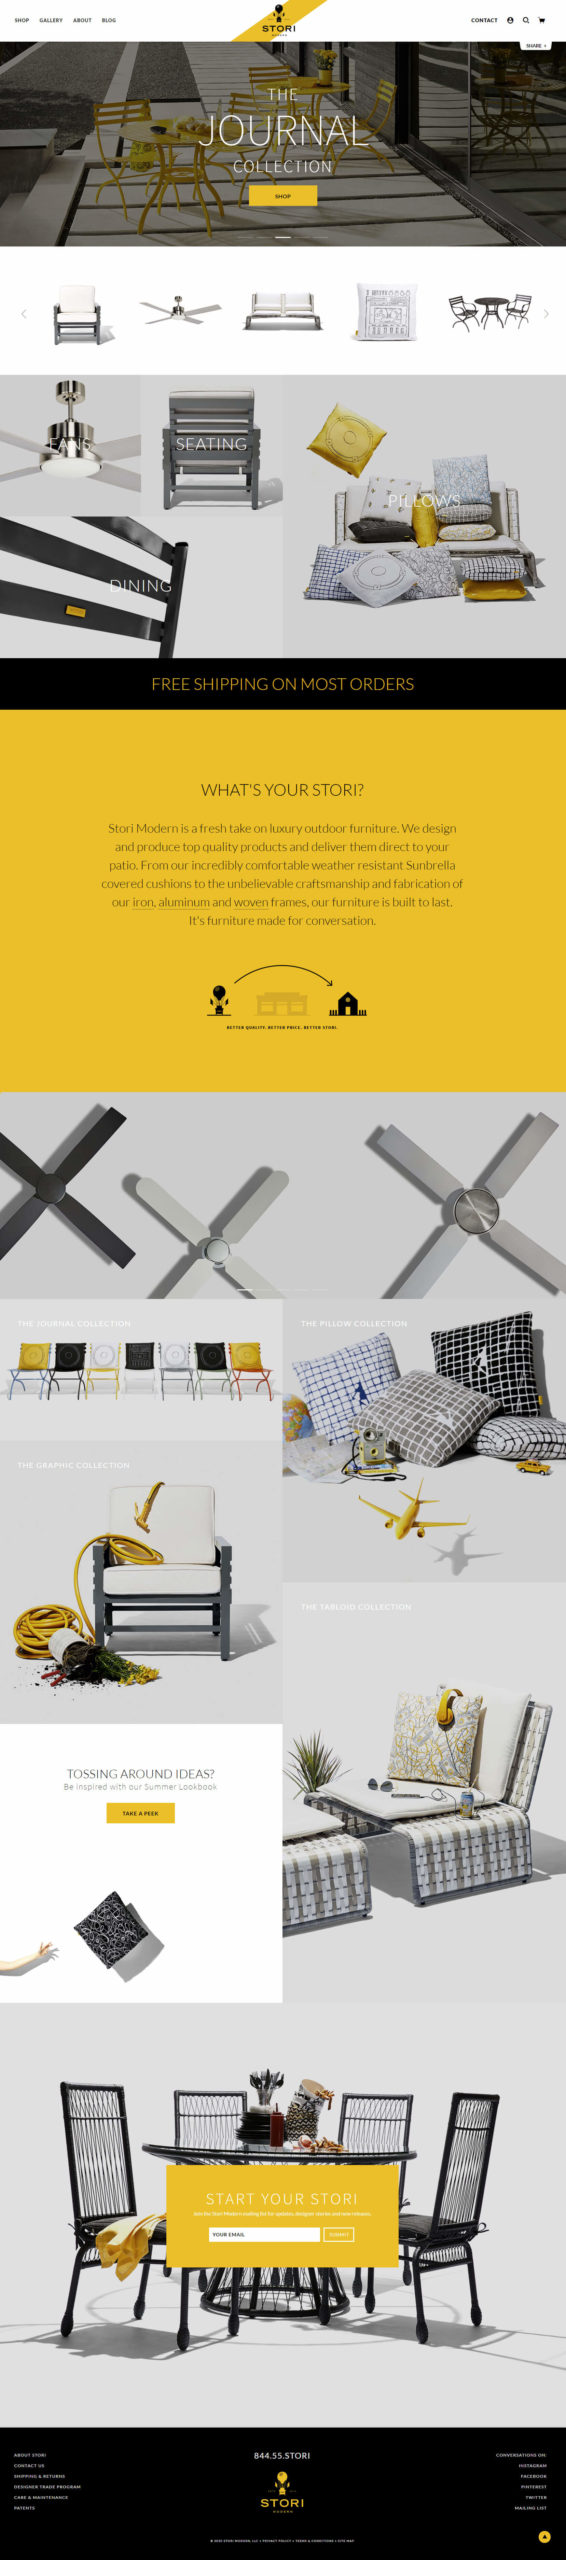 StoriModern eCommerce Website Home Page